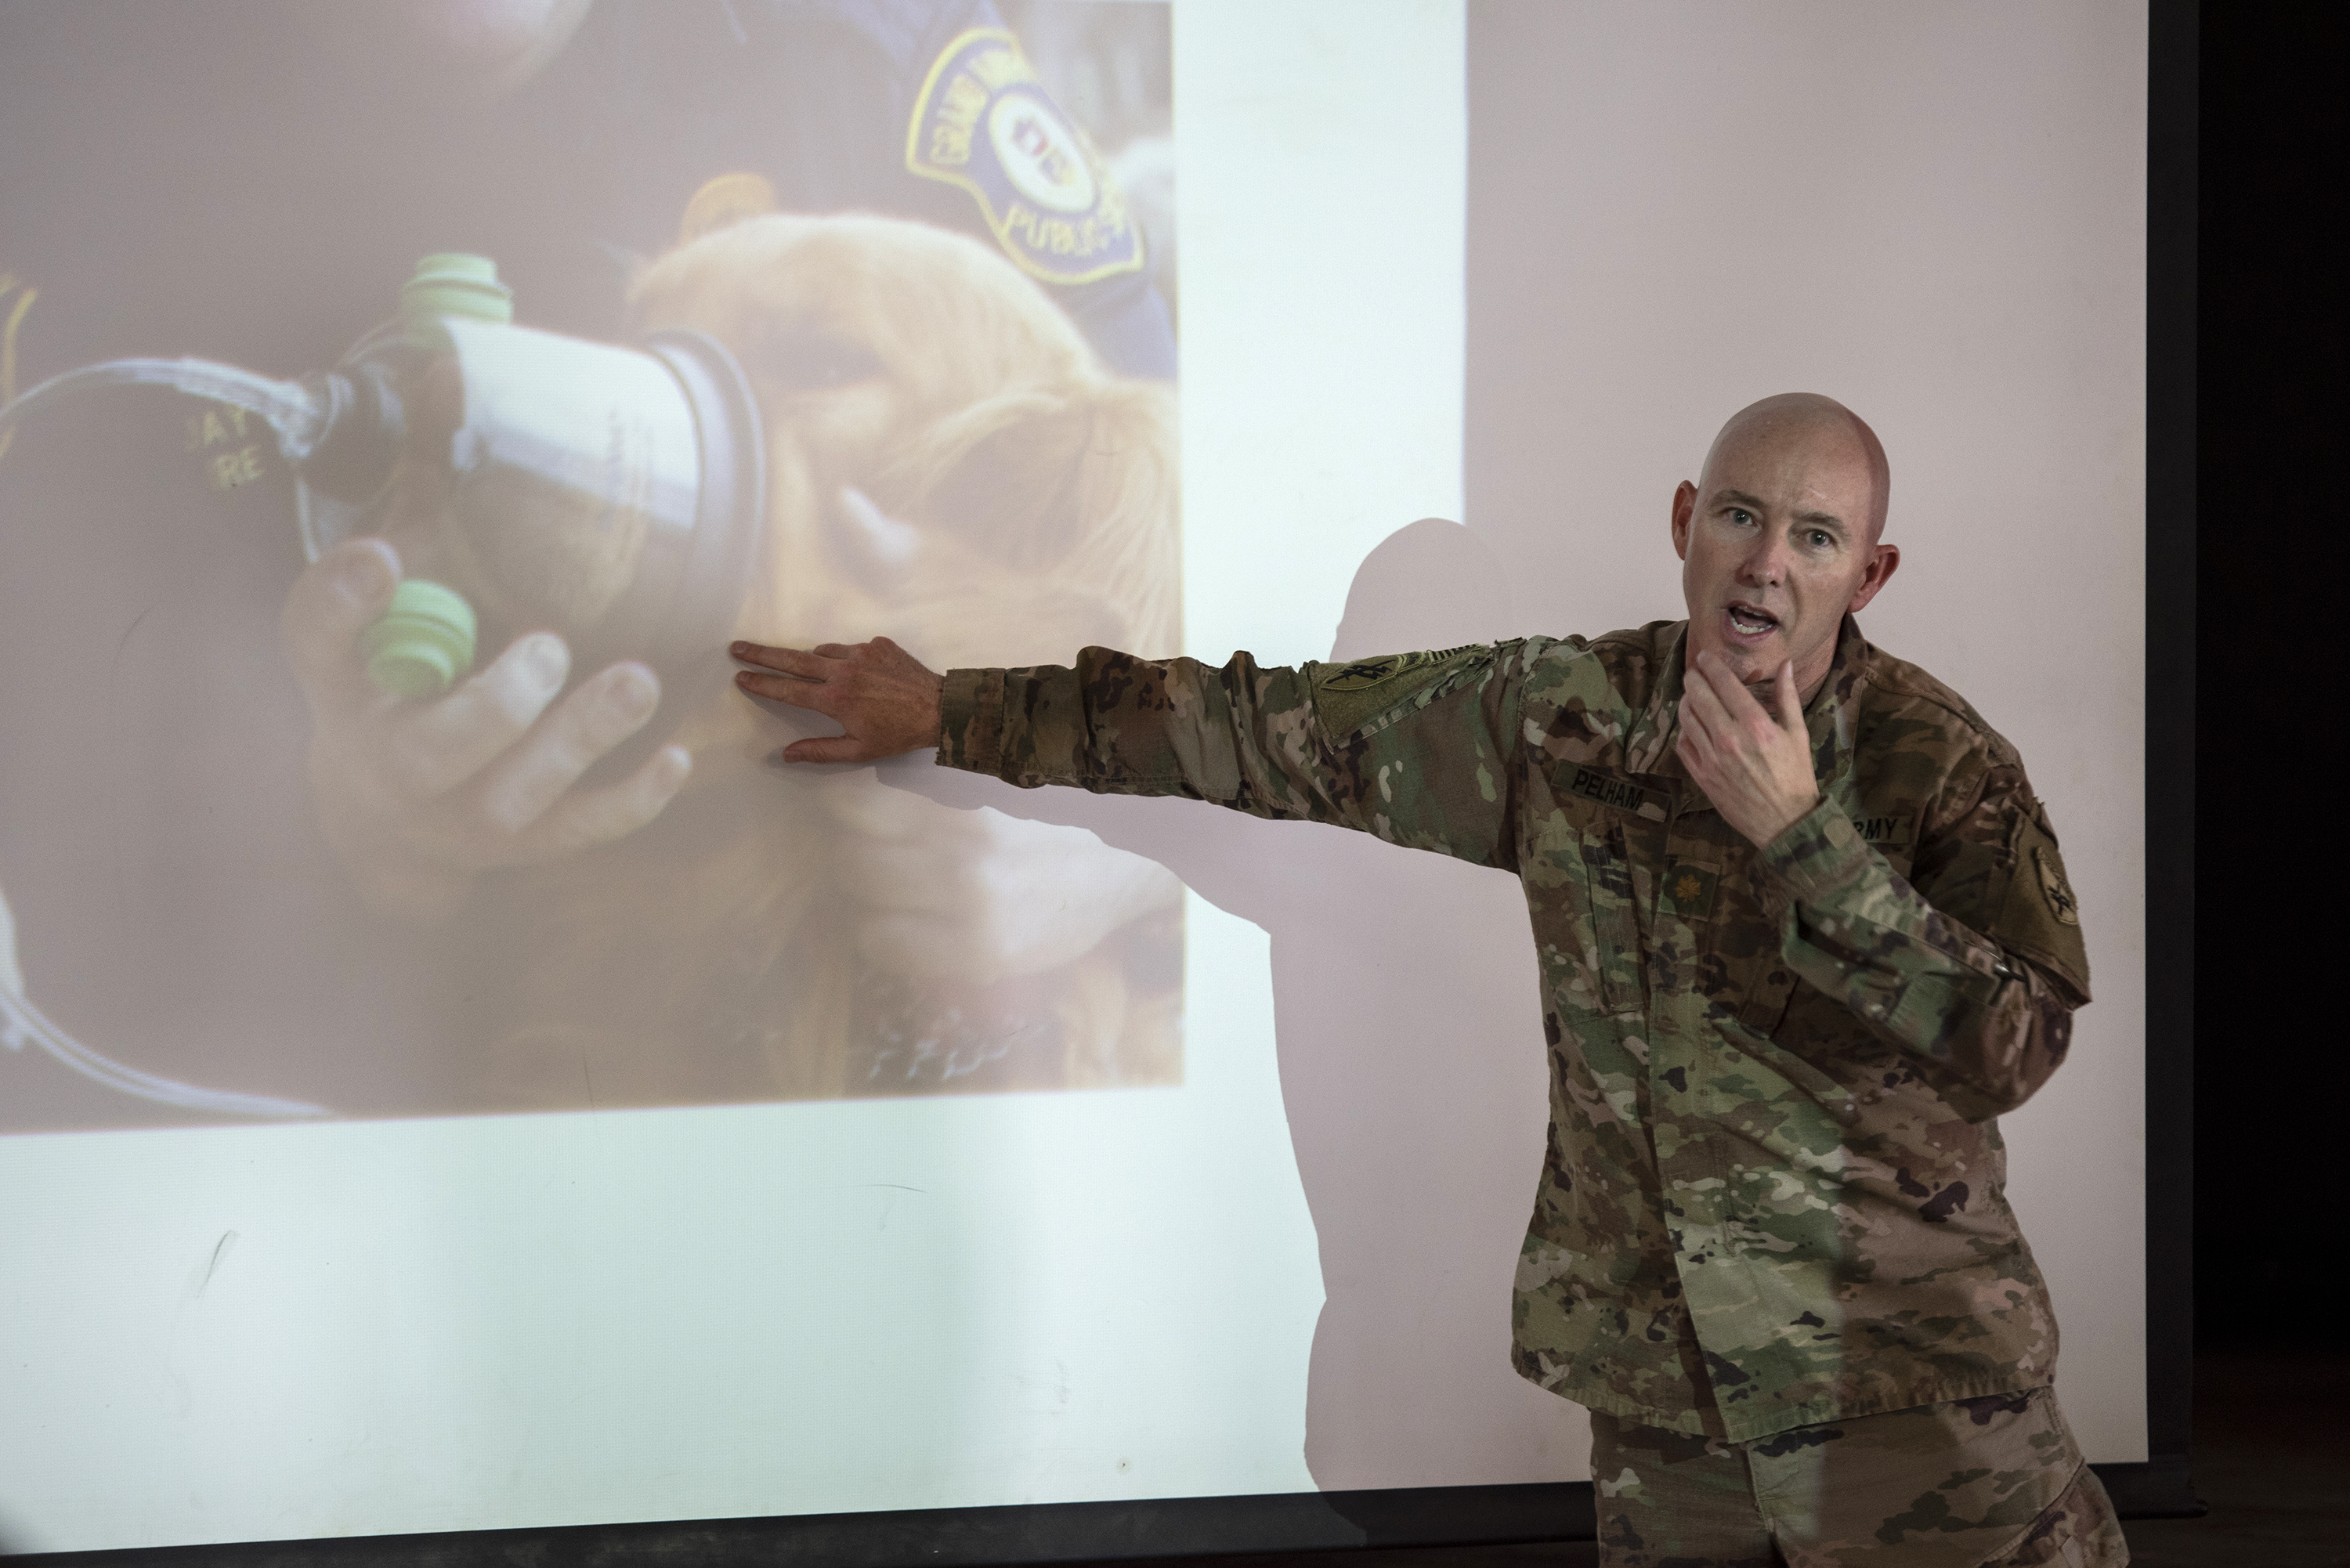 U.S. Army Maj. Steven Pelham, a veterinarian with the 404th Civil Affairs Battalion, Combined Joint Task Force - Horn of Africa, teaches canine care techniques on Camp Lemonnier, Djibouti, Aug. 18, 2018. Pelham was supporting a training event on canine tactical combat casualty care to help familiarize service members with medical backgrounds, on treating canines in the field. (U.S. Air National Guard photo by Master Sgt. Sarah Mattison)